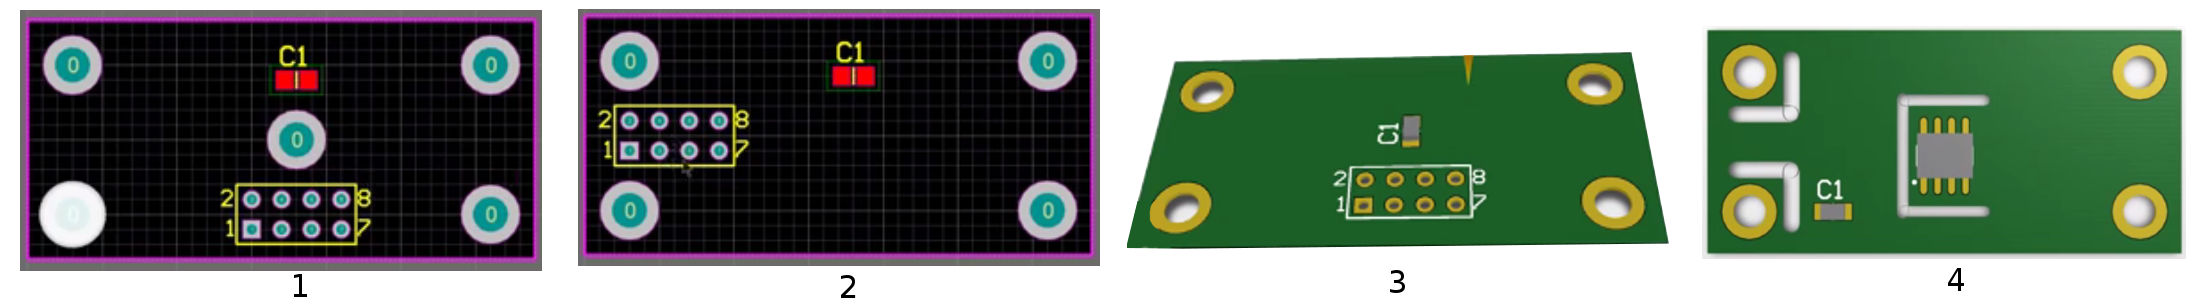 Capacitor placment PCB